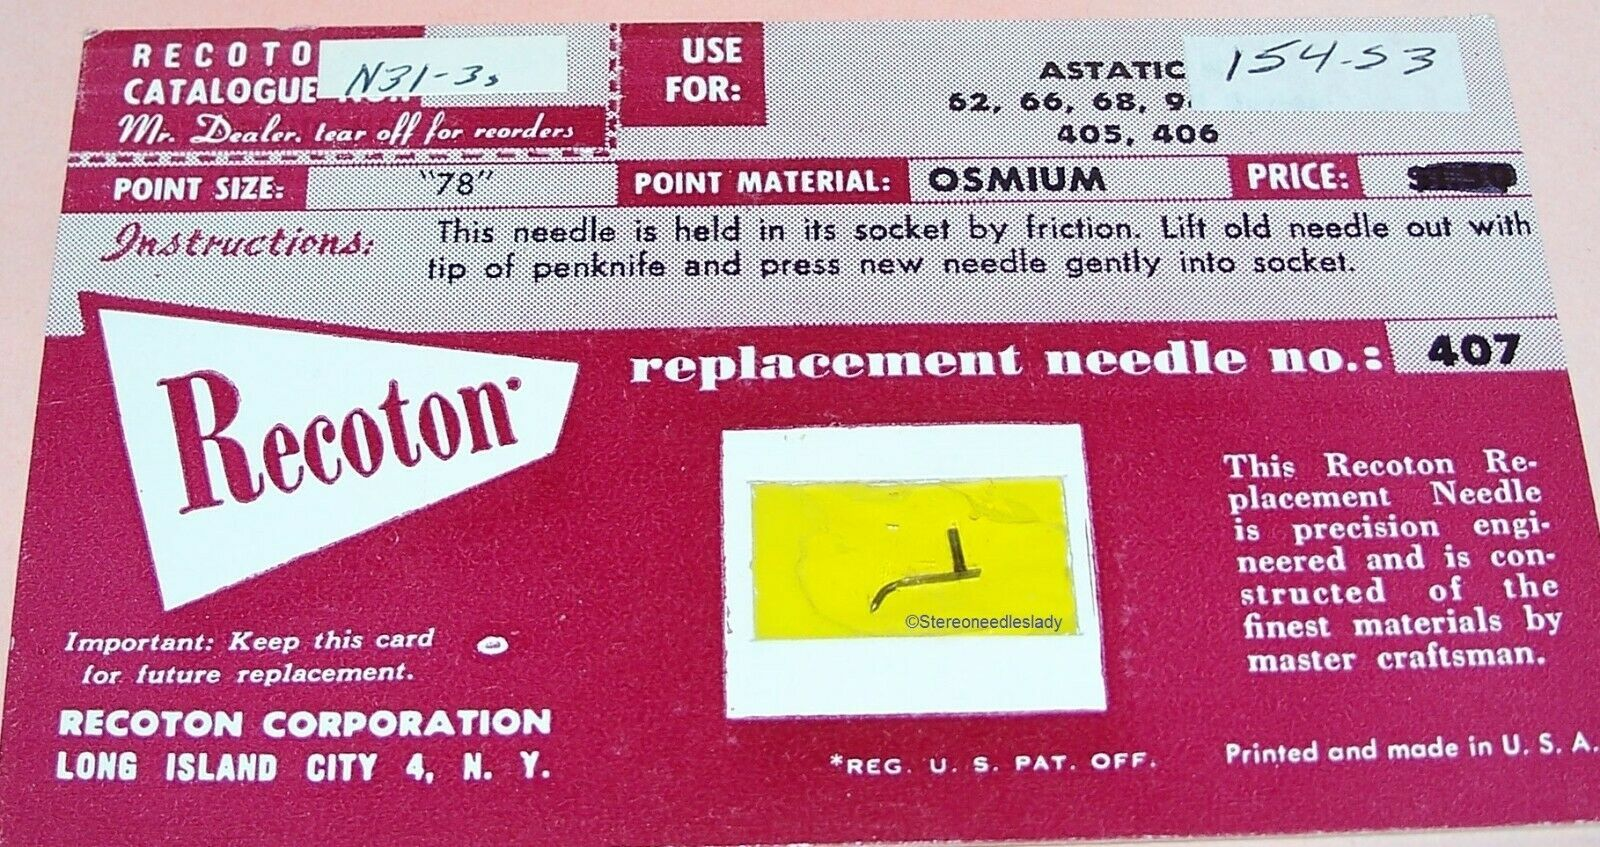 RECORD PLAYER NEEDLE Recoton 444 154-S3 for Astatic N31-1D J K M X A67 N31-3s